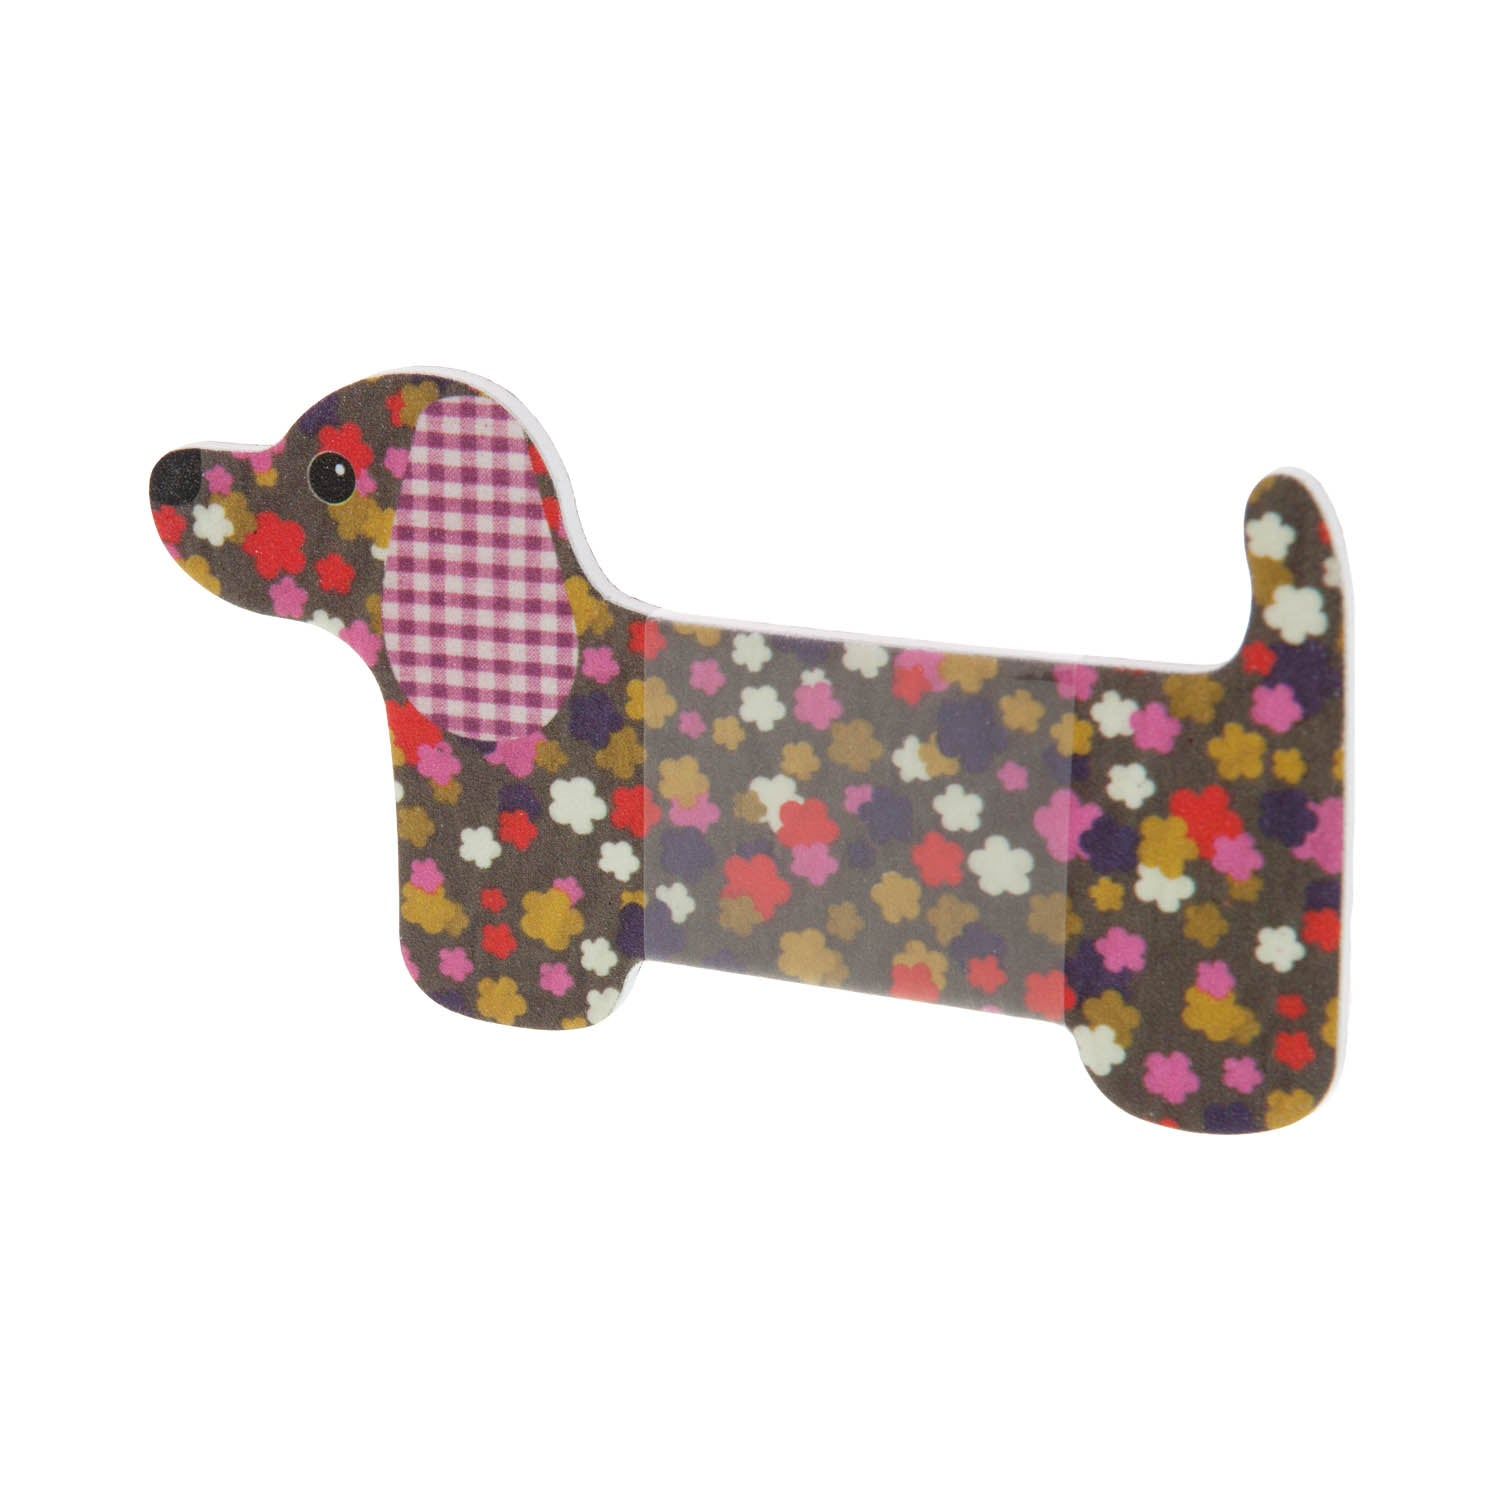 Dog Krazy Gifts - Dachshund Nail File - Autumnal, part of the range of Dachshund themed gifts available from DogKrazyGifts.co.uk